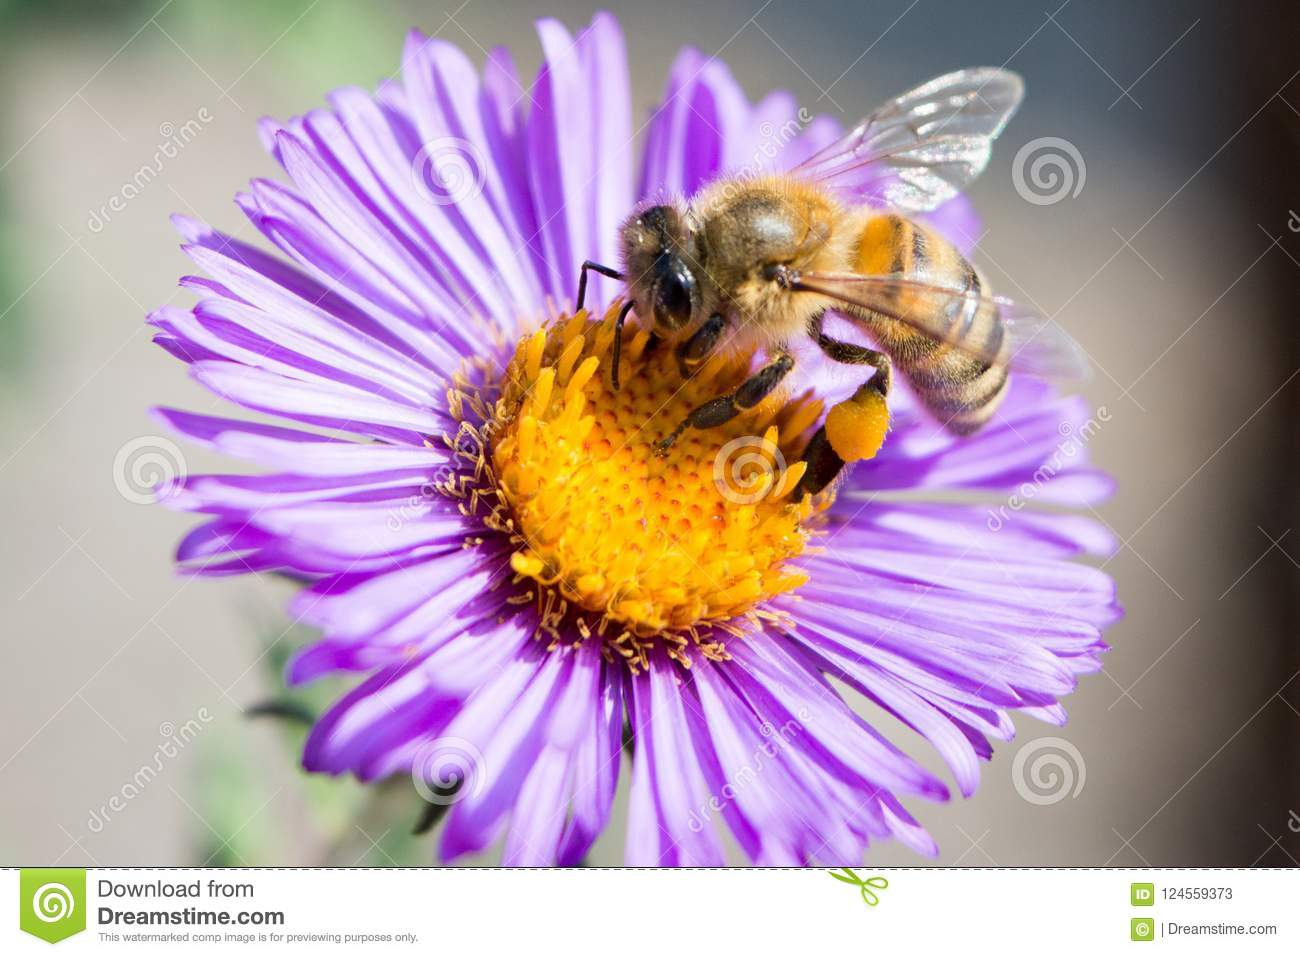 Bee on a flower close up